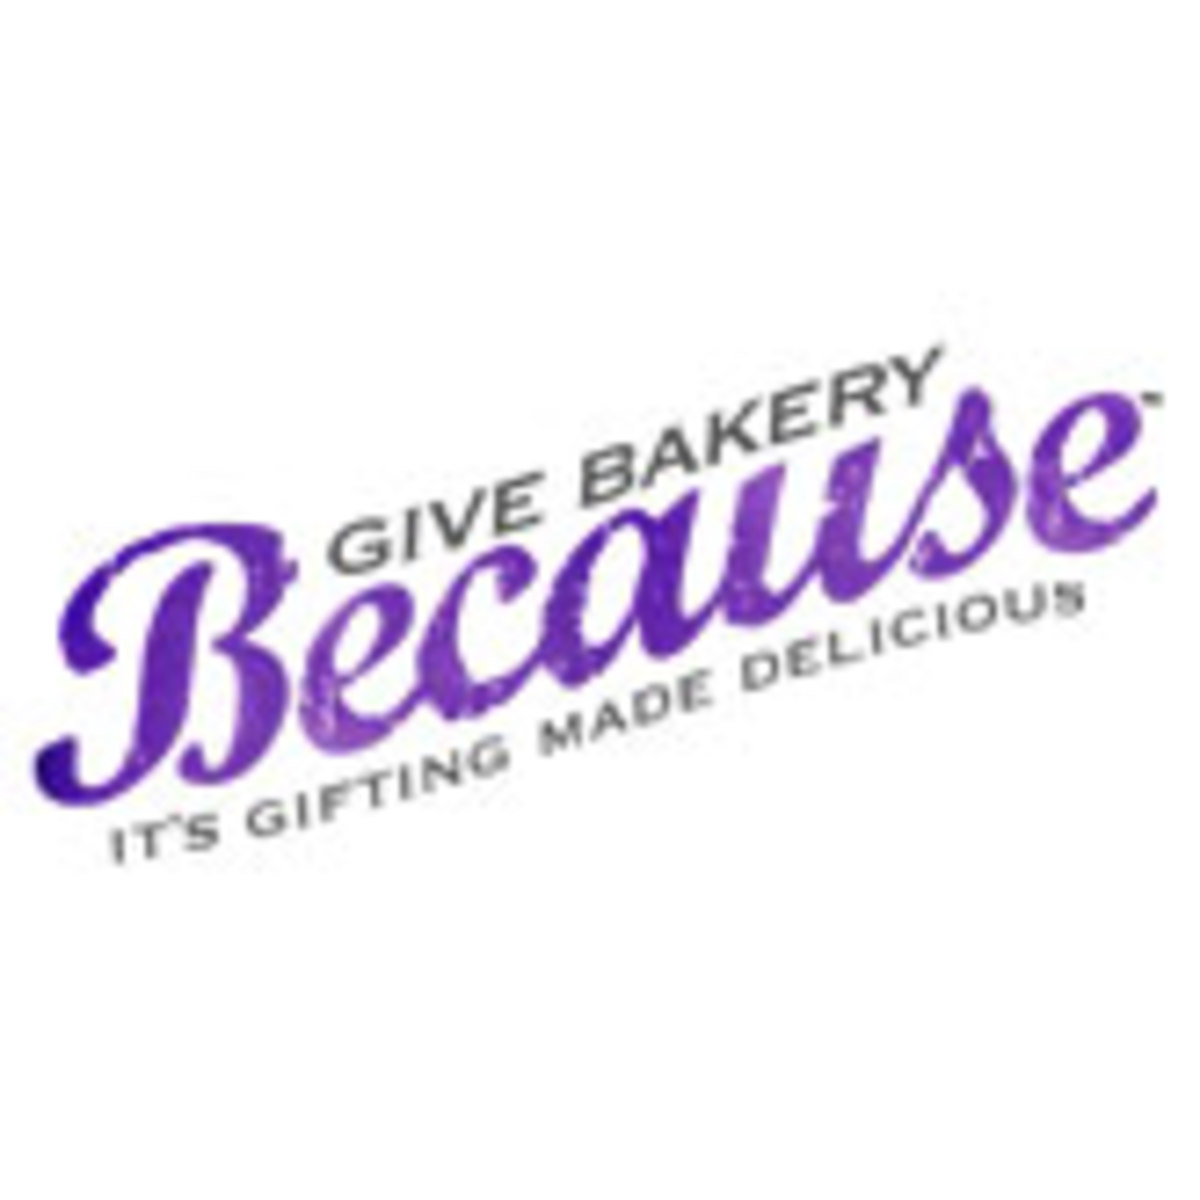 Give Bakery